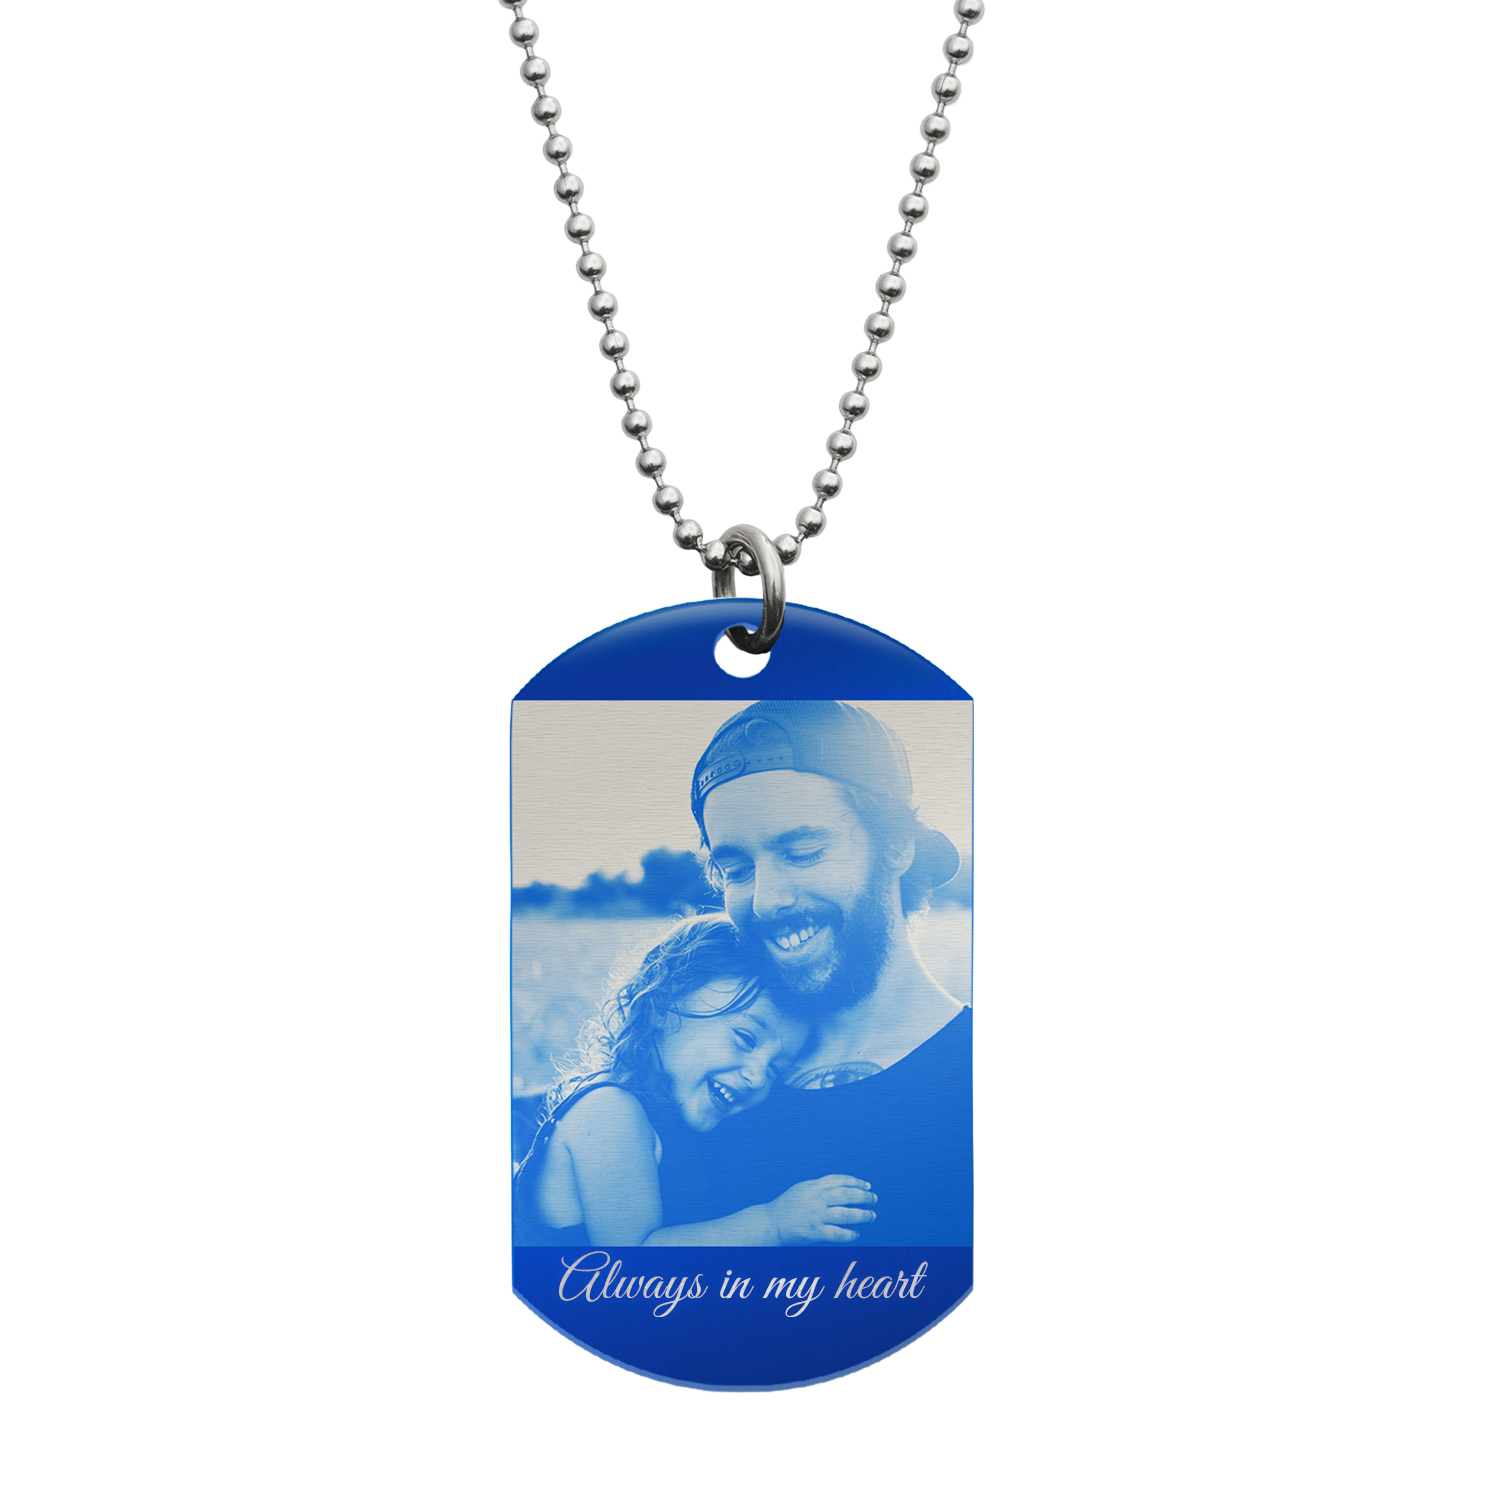 Superhero Coach Dad Personazlied Photo Text Dog Tag Military Keychain Pendant Son or Daughter, 24 in Blue